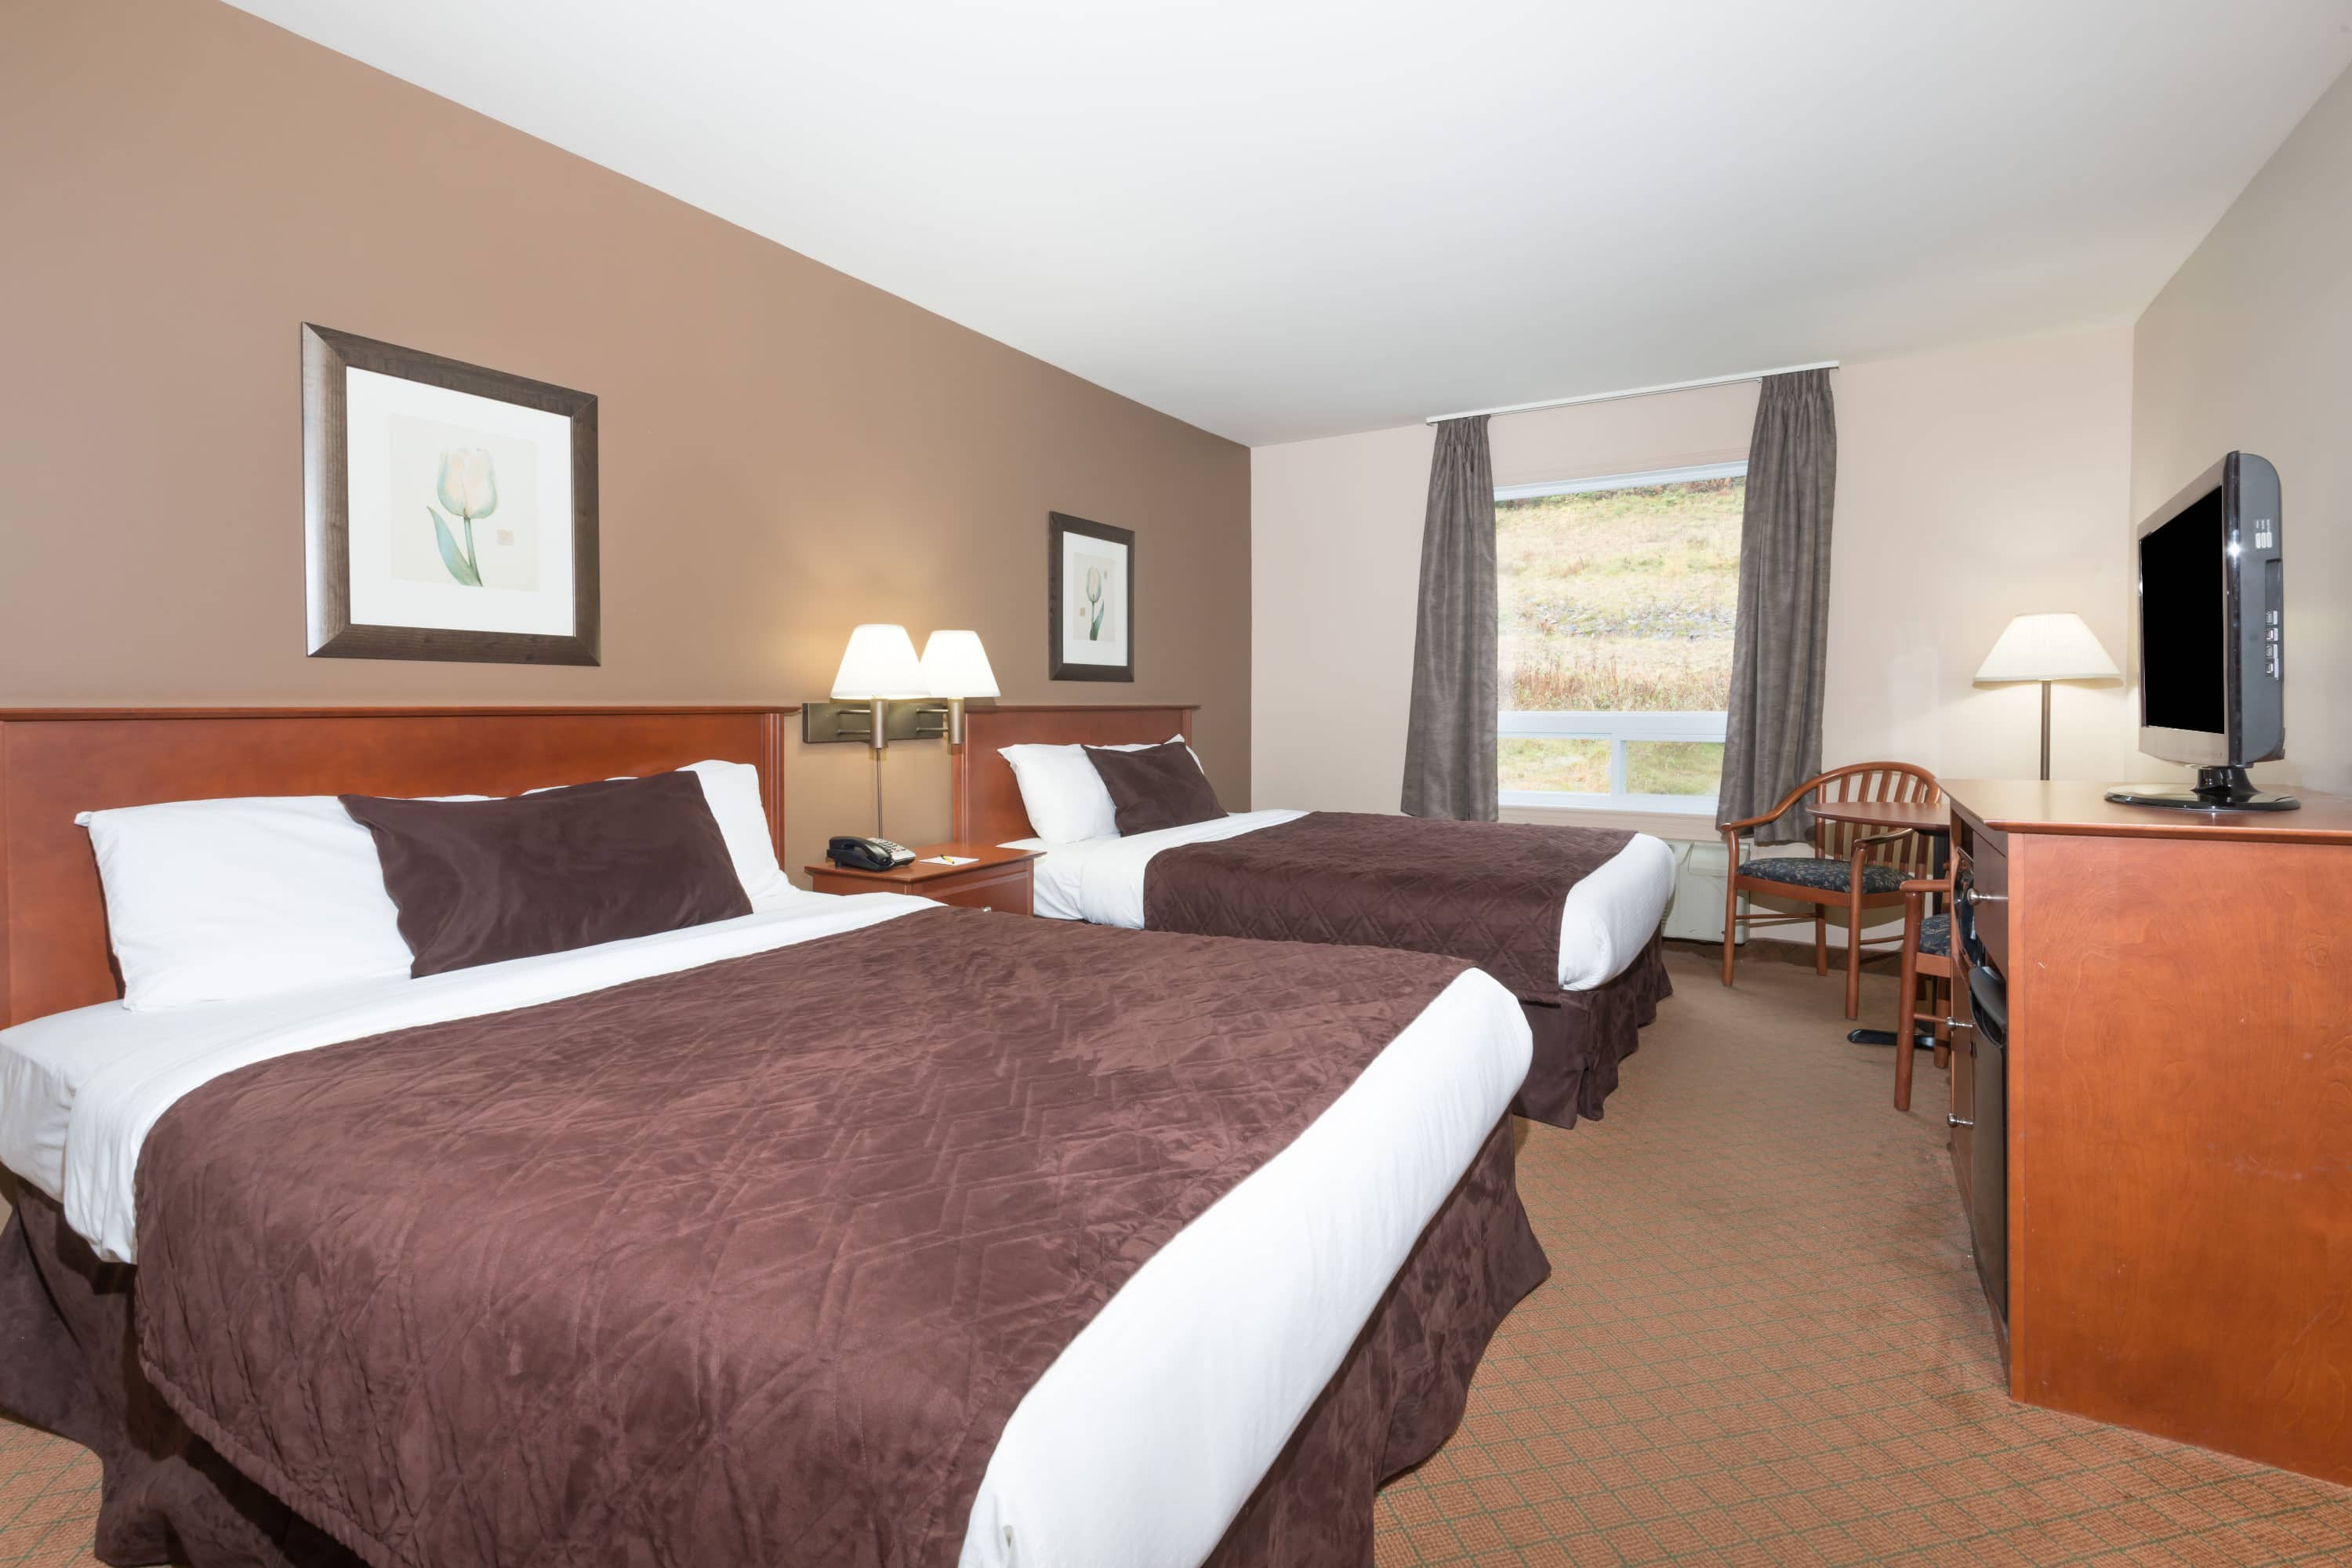 Guest room at the Super 8 by Wyndham Sainte Agathe Des Monts in Sainte-Agathe-des-Monts, Quebec